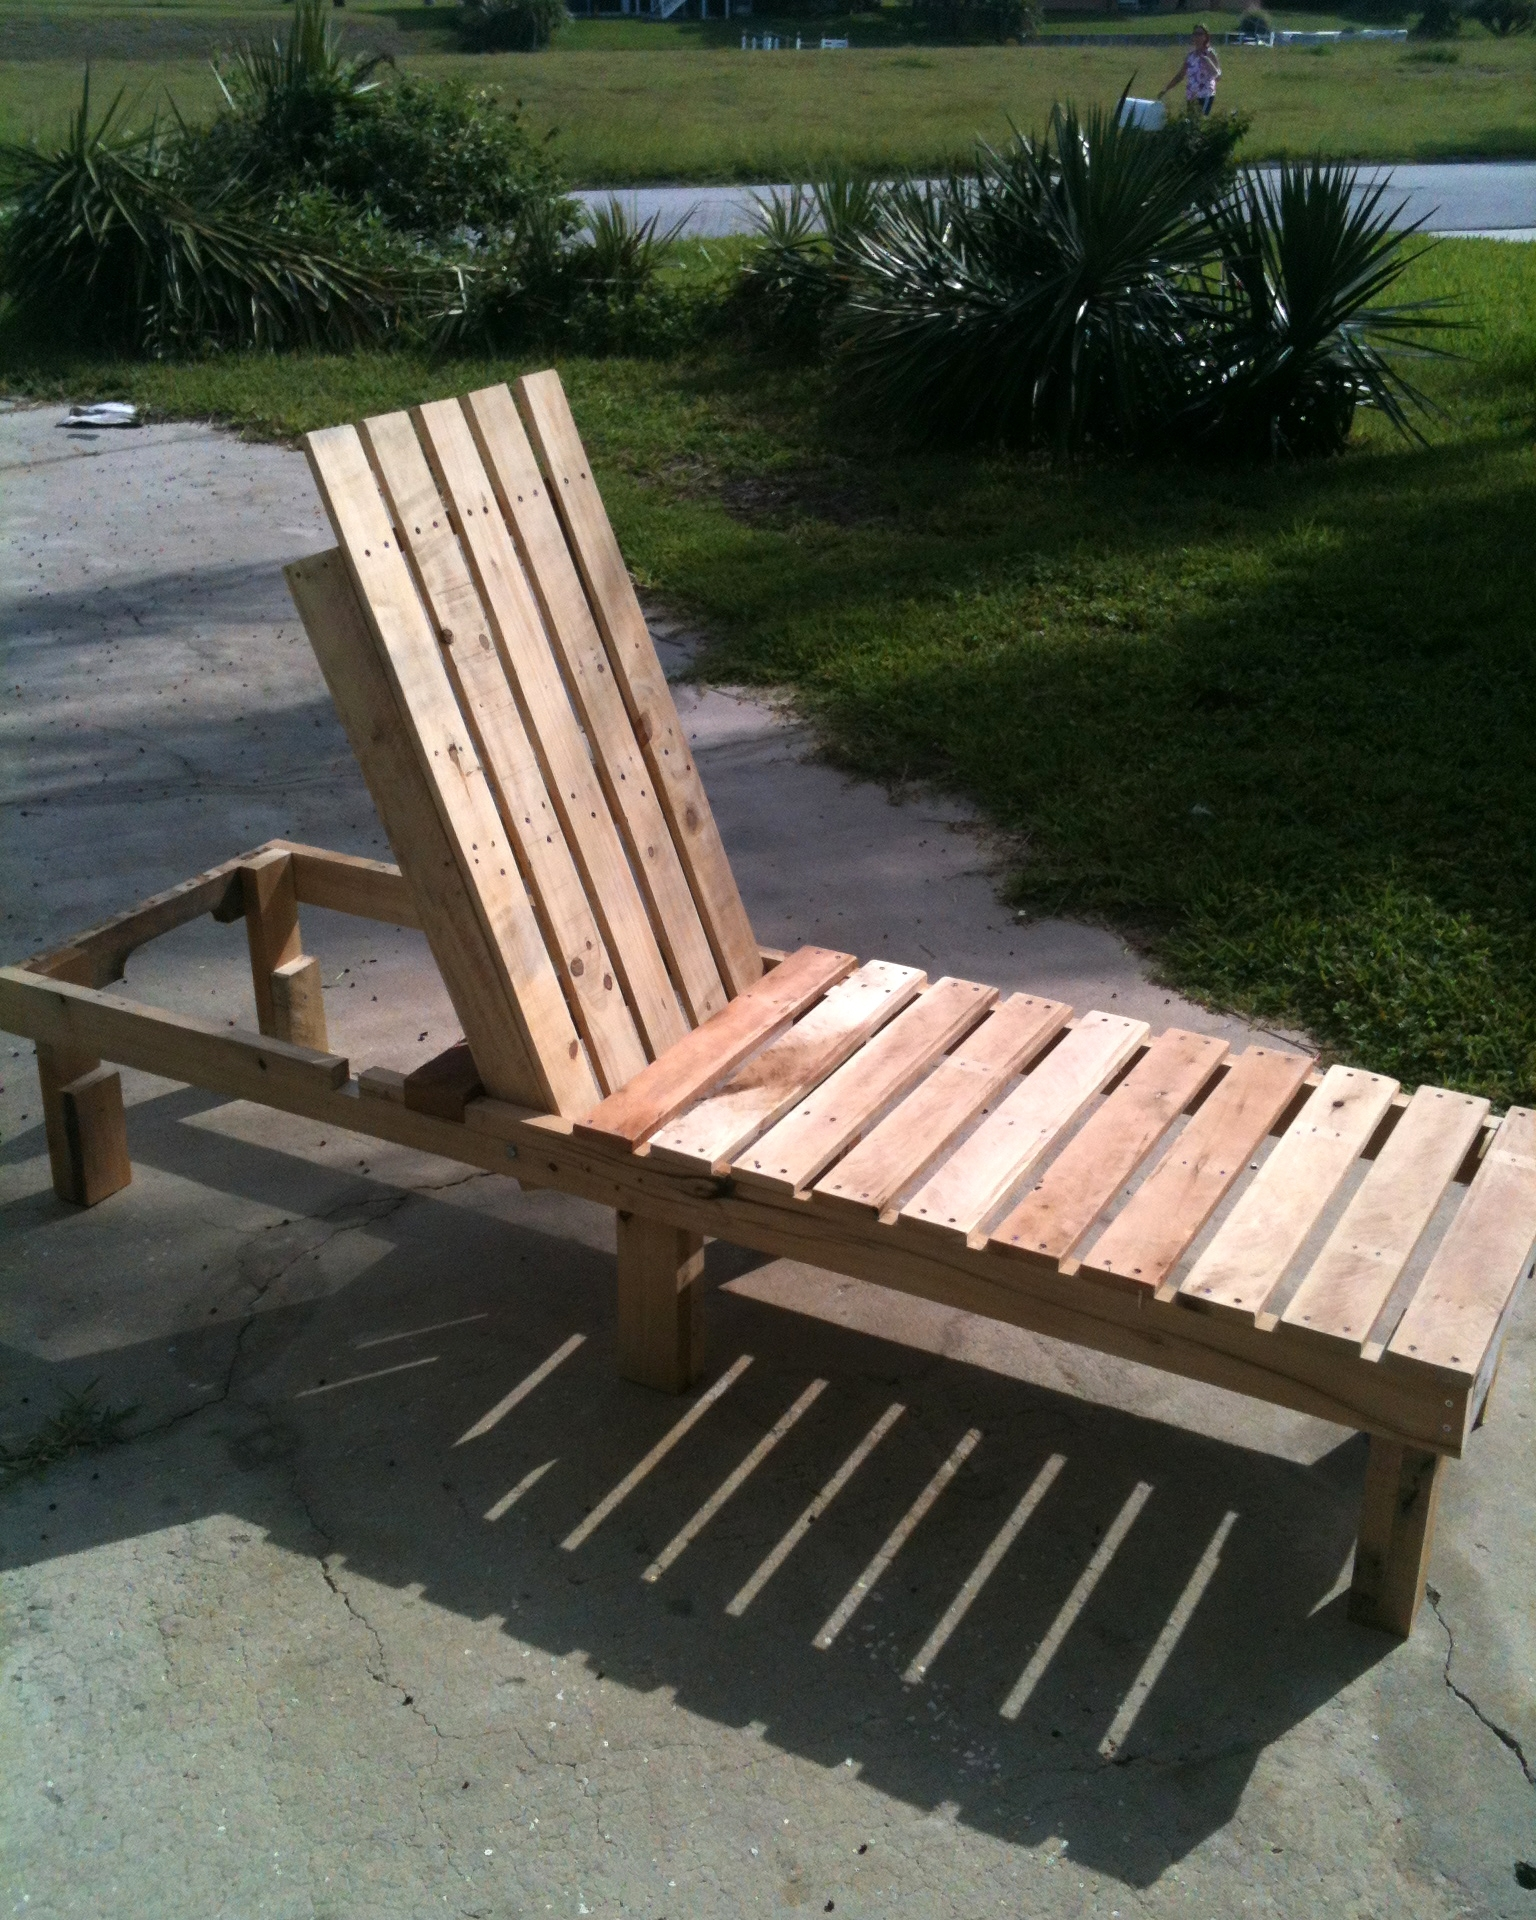 Chaise Loungepallirondack – Diy Projects Pertaining To Preferred Diy Outdoor Chaise Lounge Chairs (View 3 of 15)